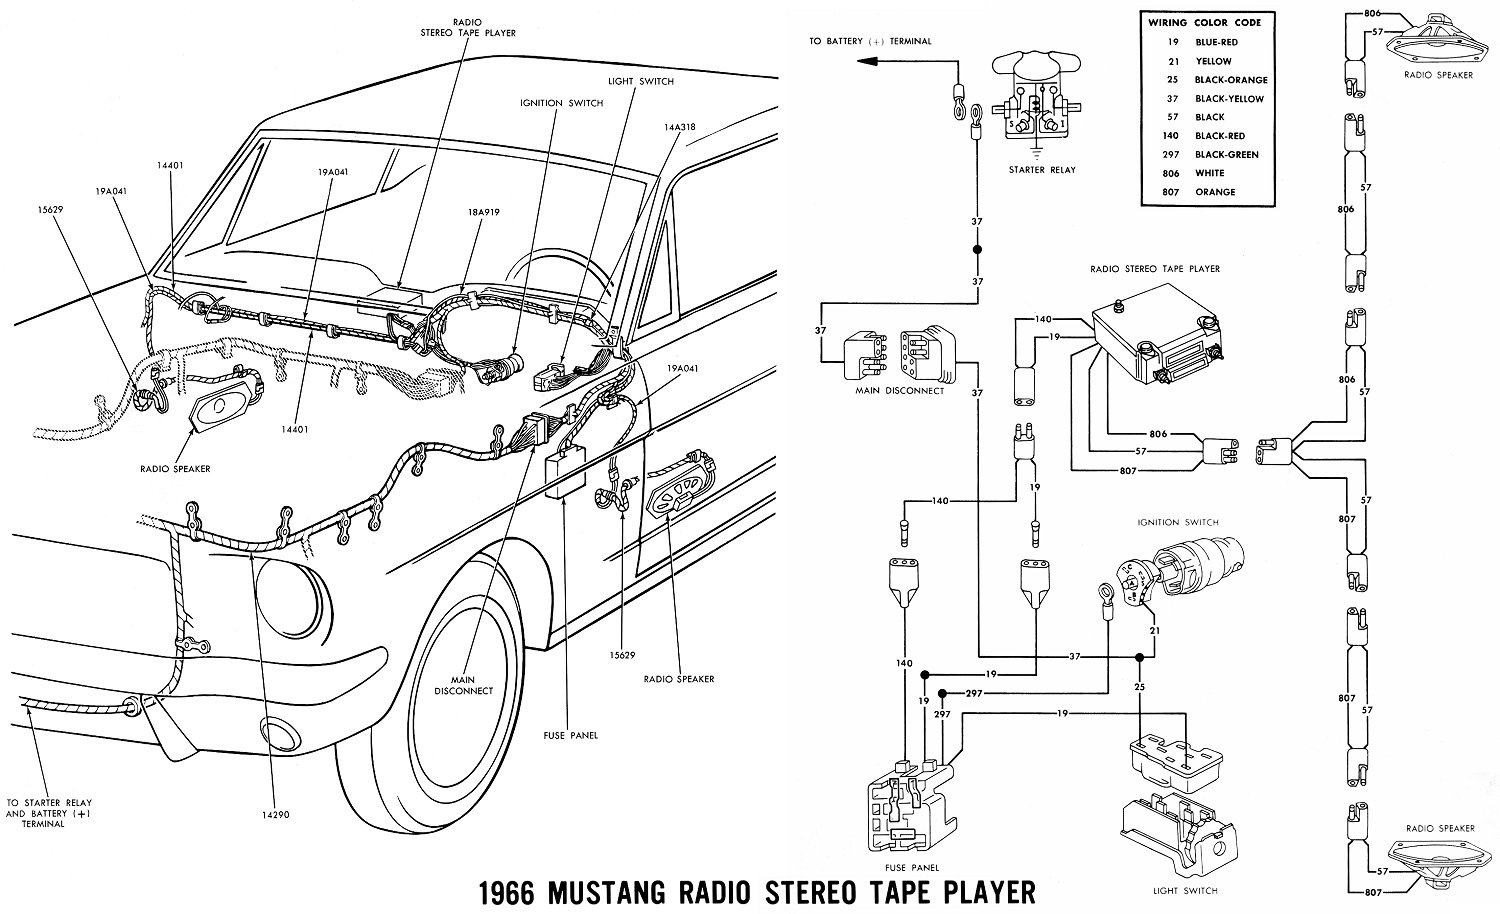 ... 66 accessories schematic · 66 stereo/tape player details · 66 power ...